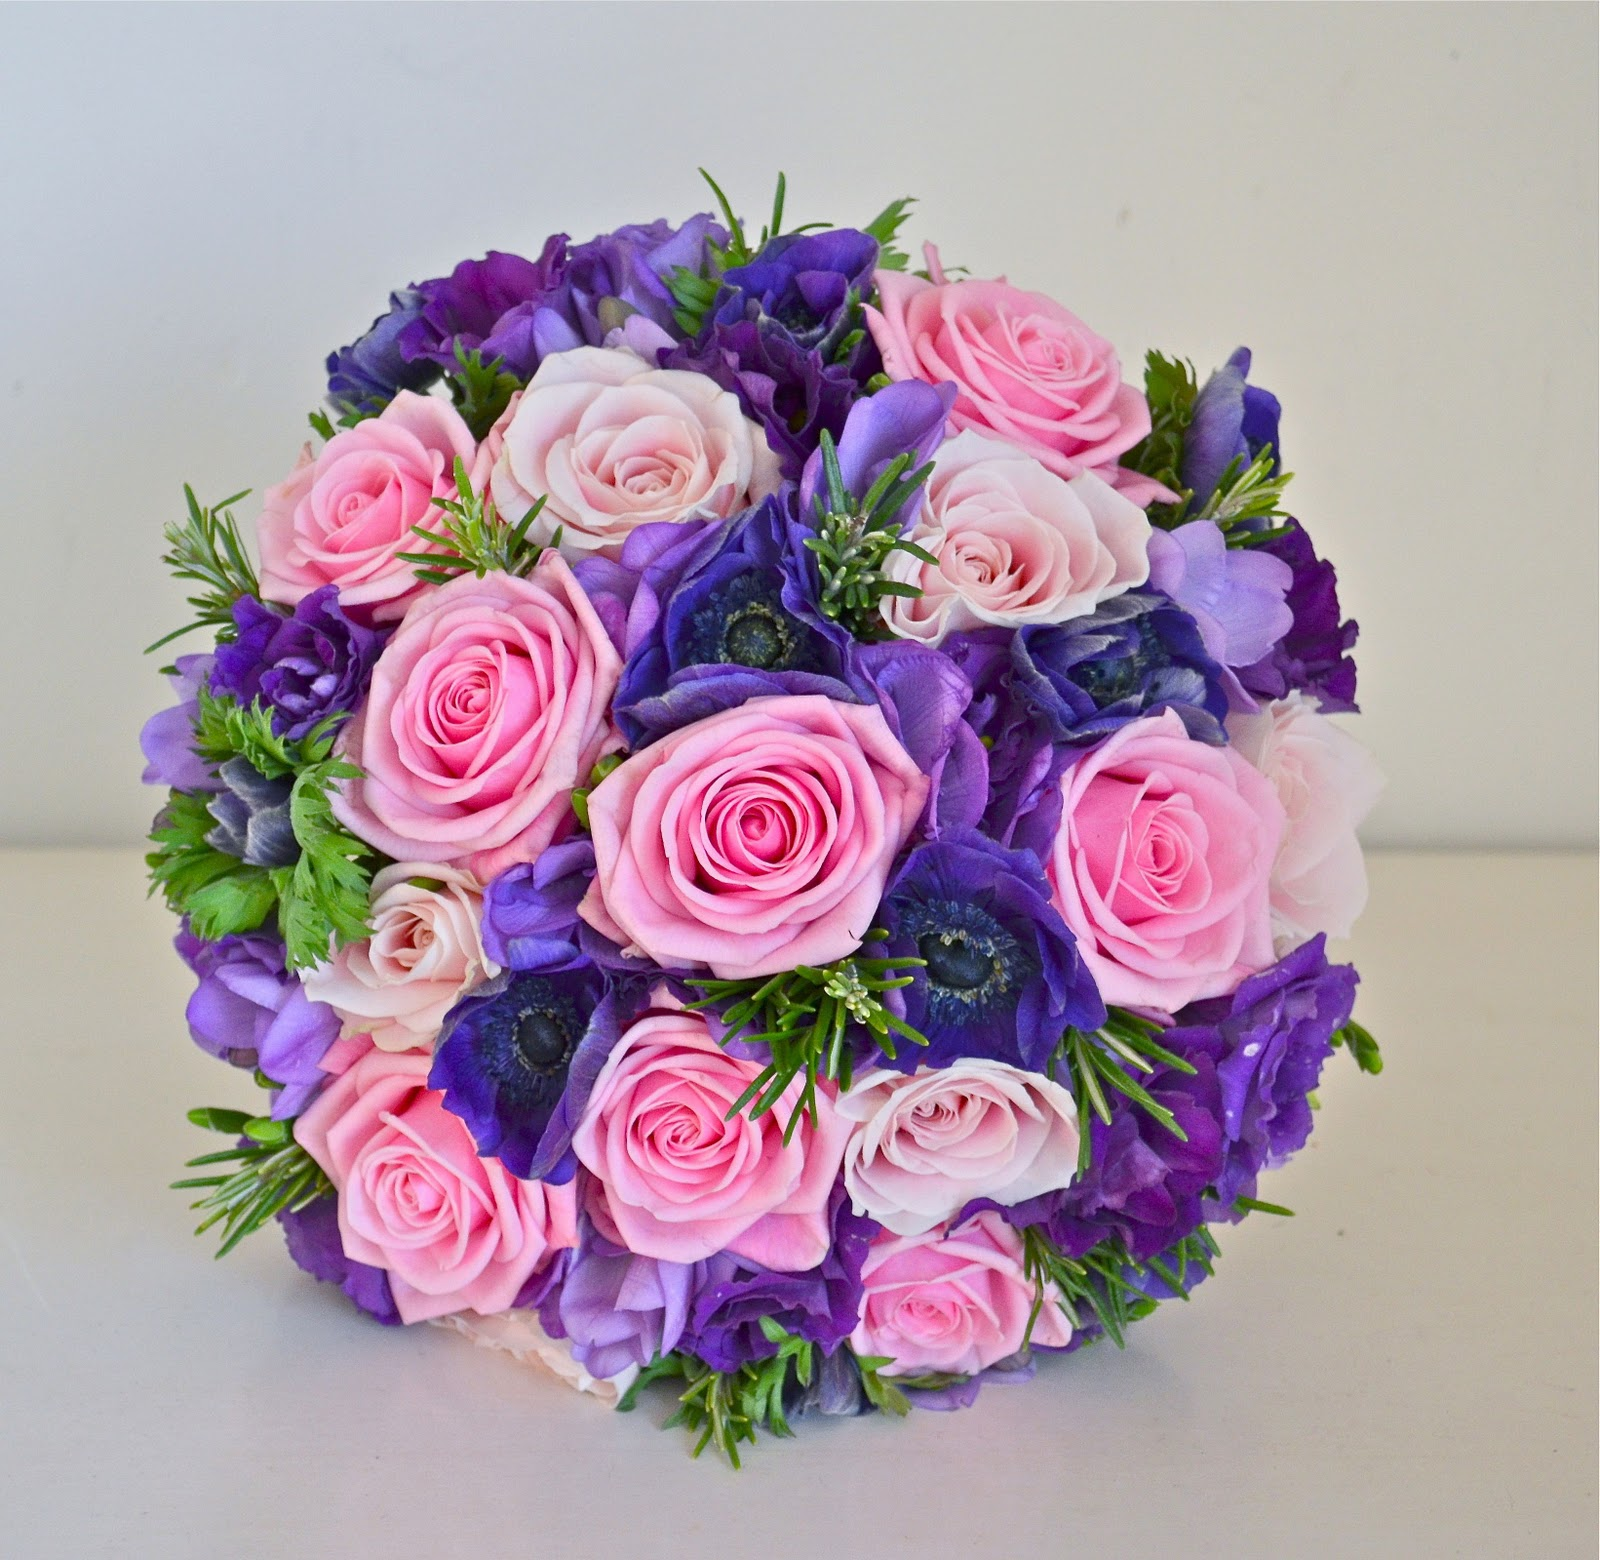 Wedding flowers blog jonquil 39 s pink and purple wedding flowers - Flowers good luck bridal bouquet ...